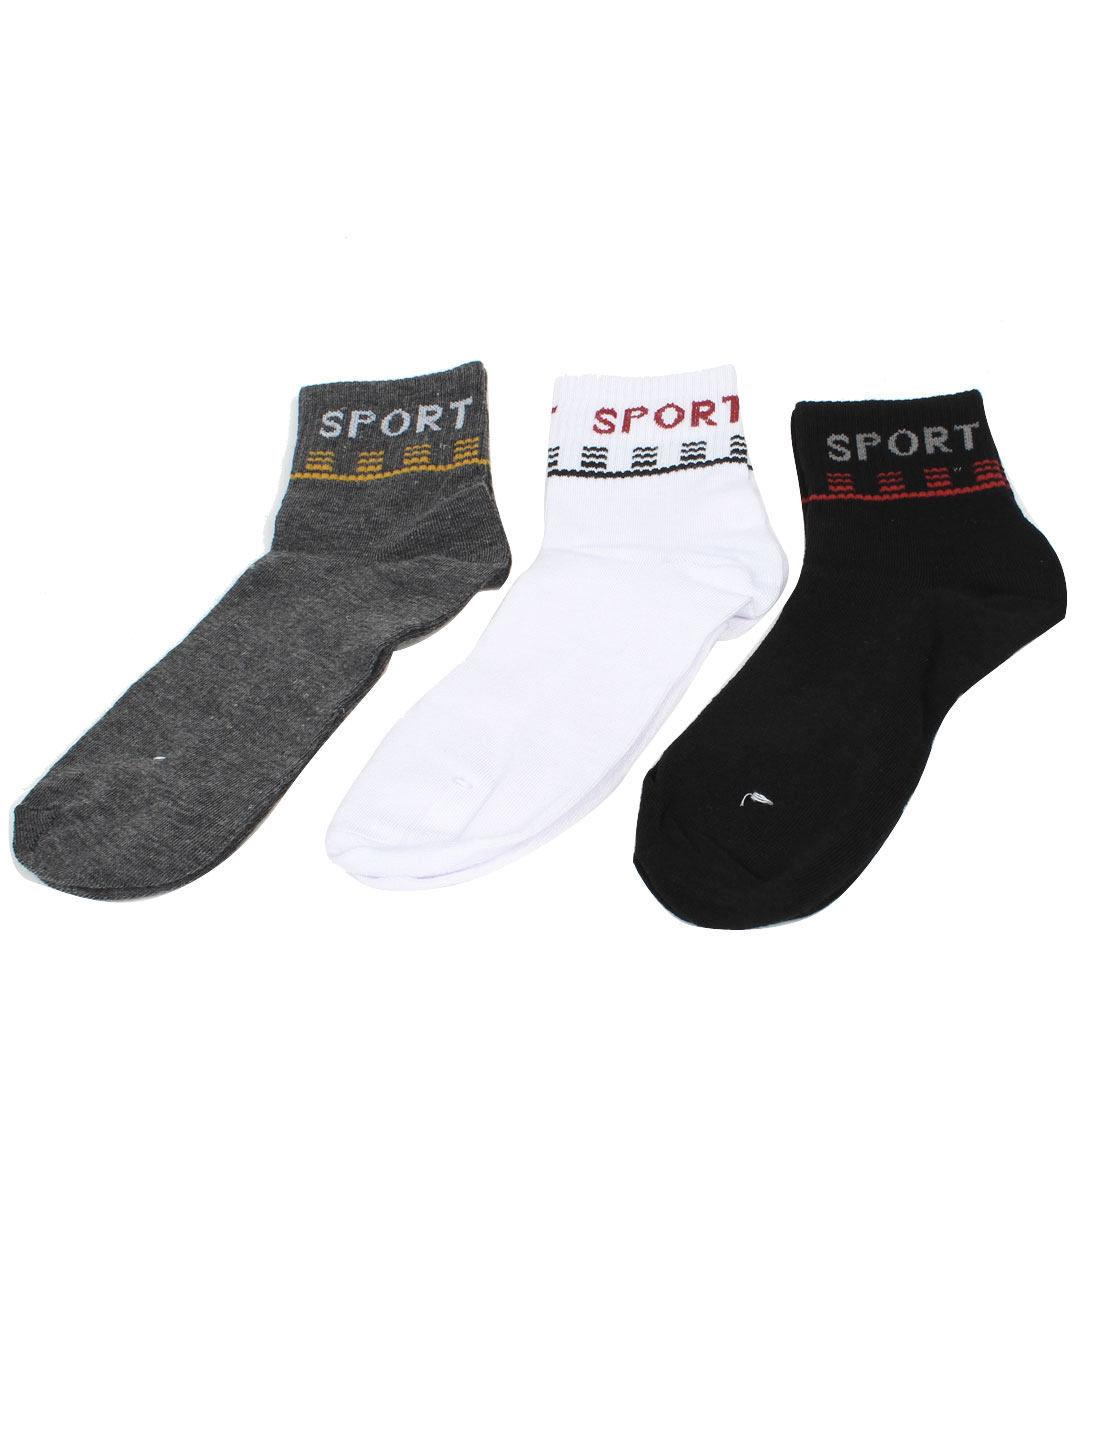 3 Pairs Gray Black White Stretchy Cuff Sports Ankle Socks for Man